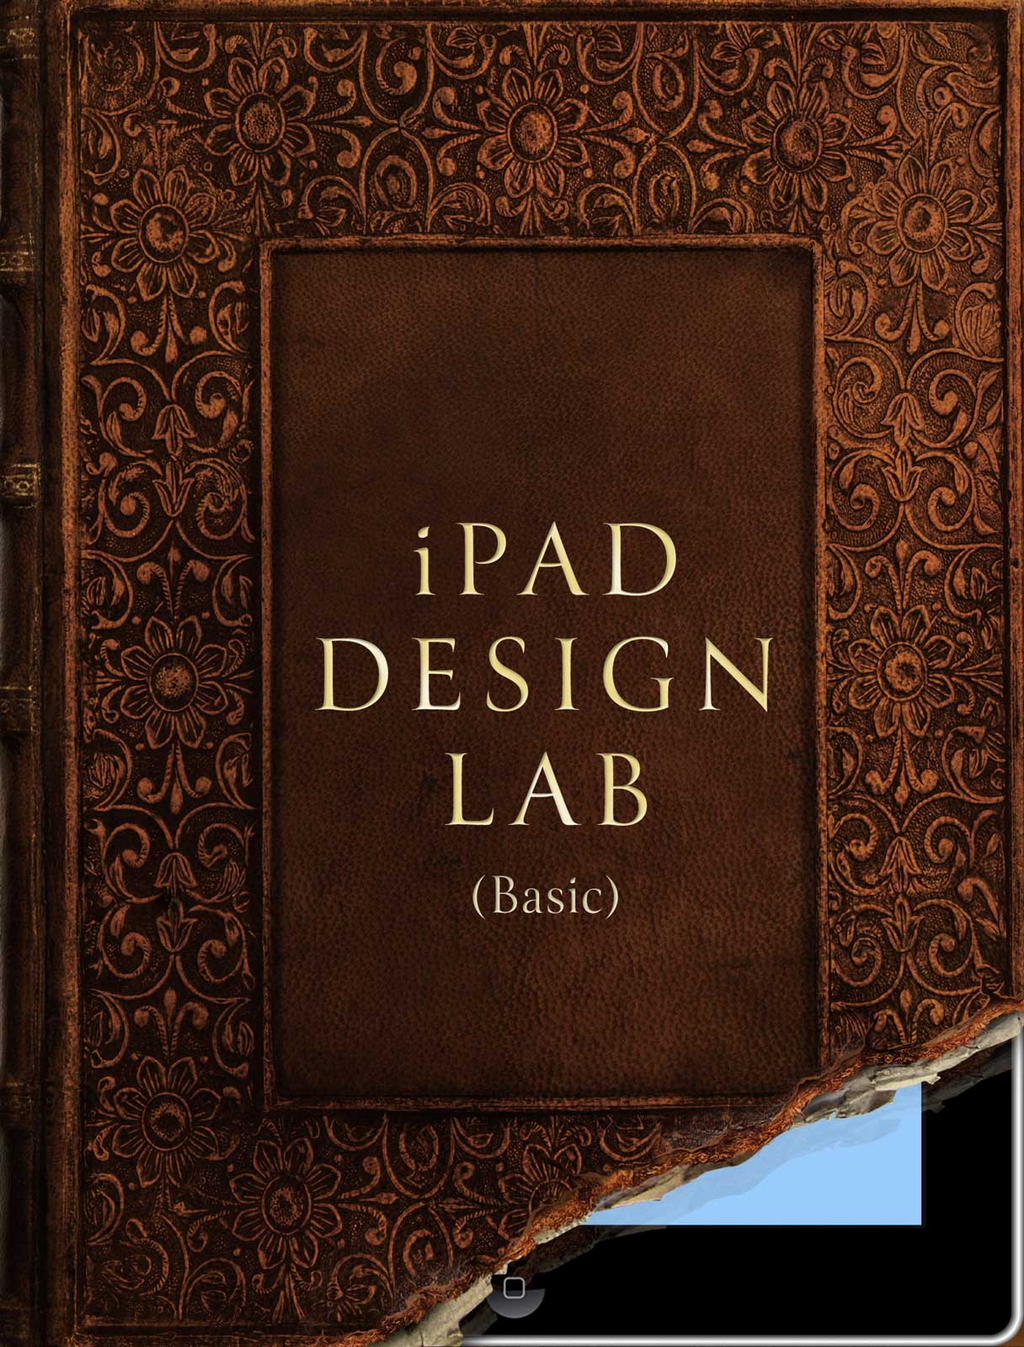 iPad Design Lab - Basic Storytelling in the Age of the Tablet